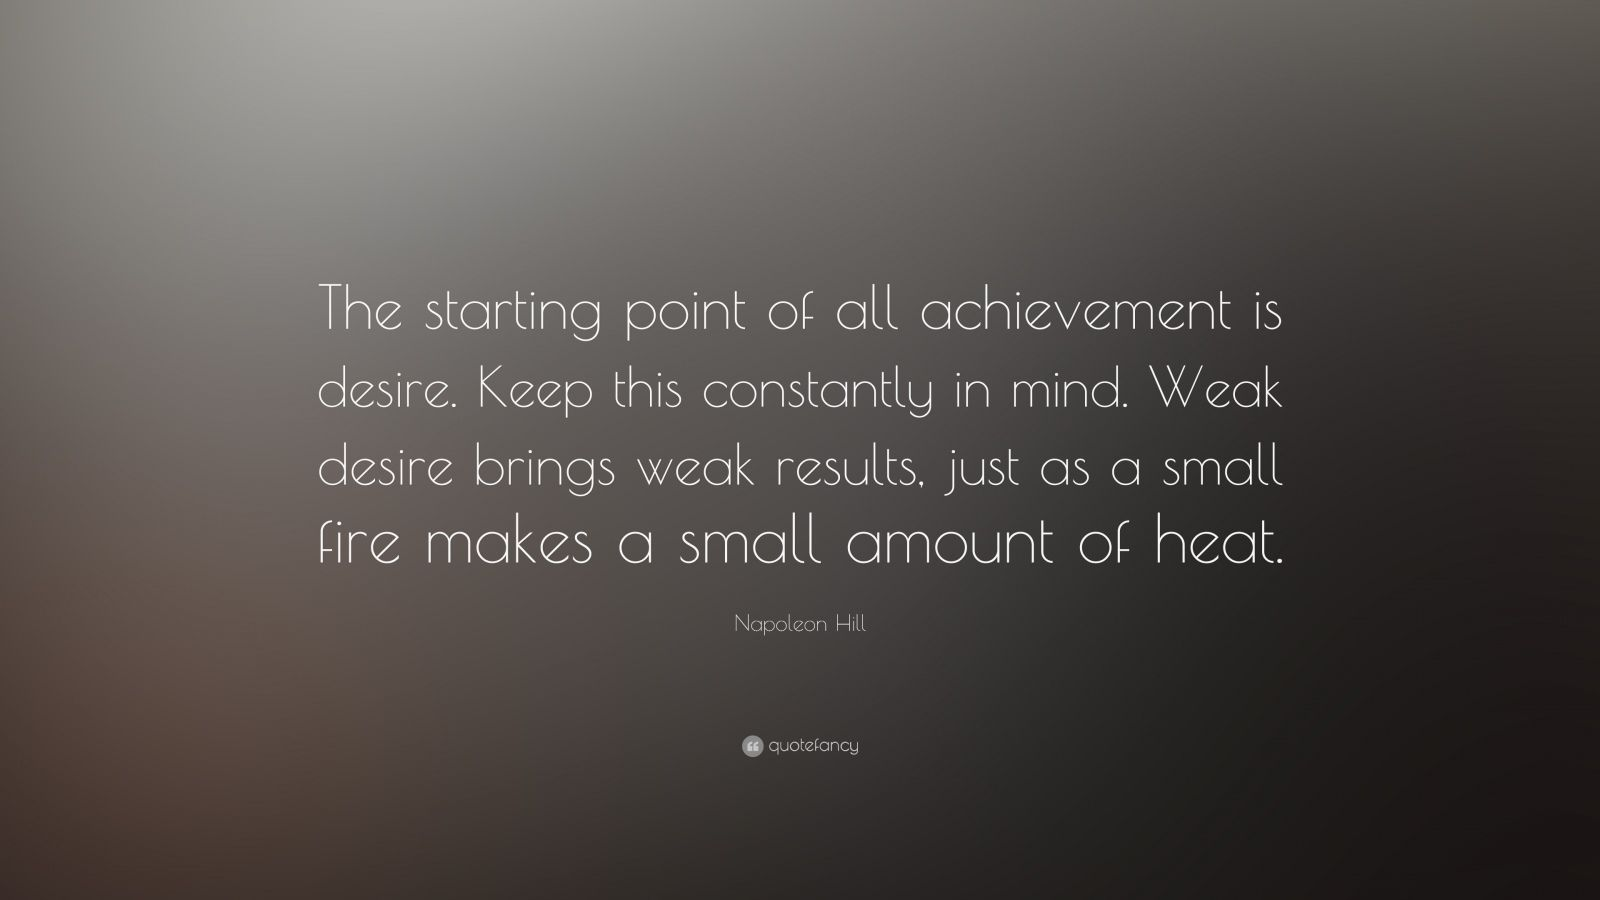 """""""The starting point of all achievement is desire. Keep this constantly in mind. Weak desire brings weak results, just as a small fire makes a small amount of heat.""""Get Inspired. Get Motivated."""